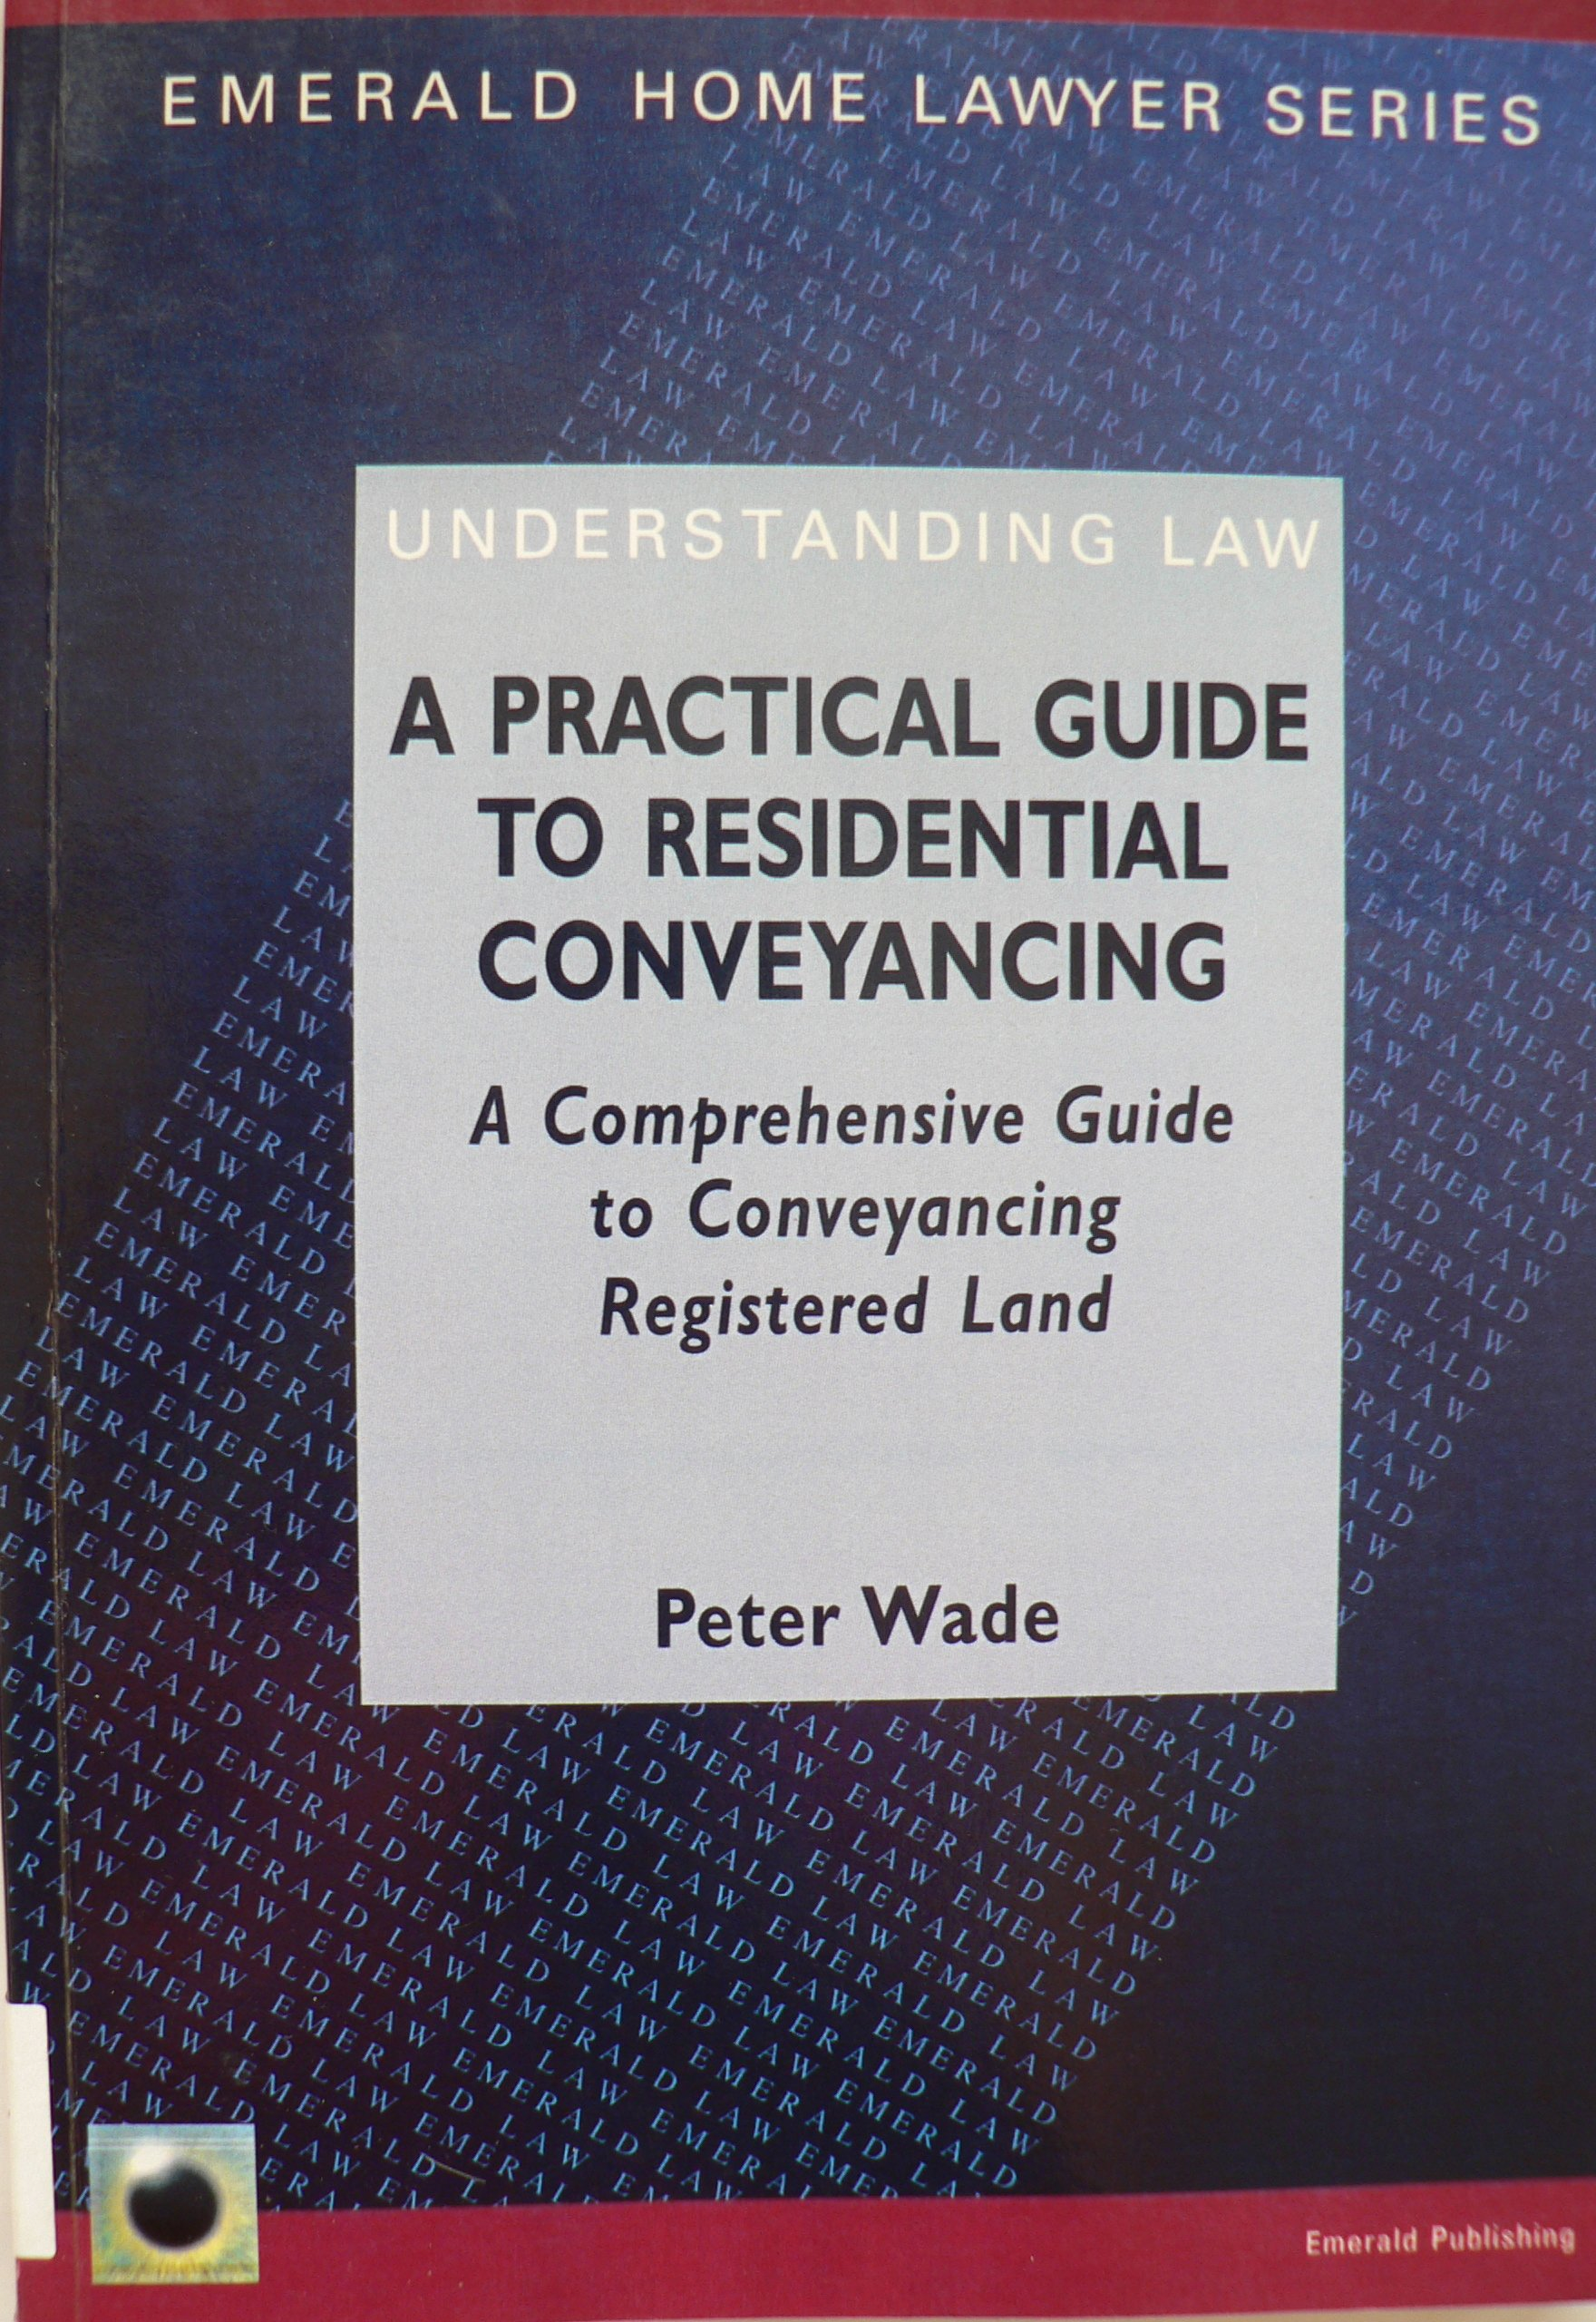 a practical guide to residential conveyancing emerald home lawyer series